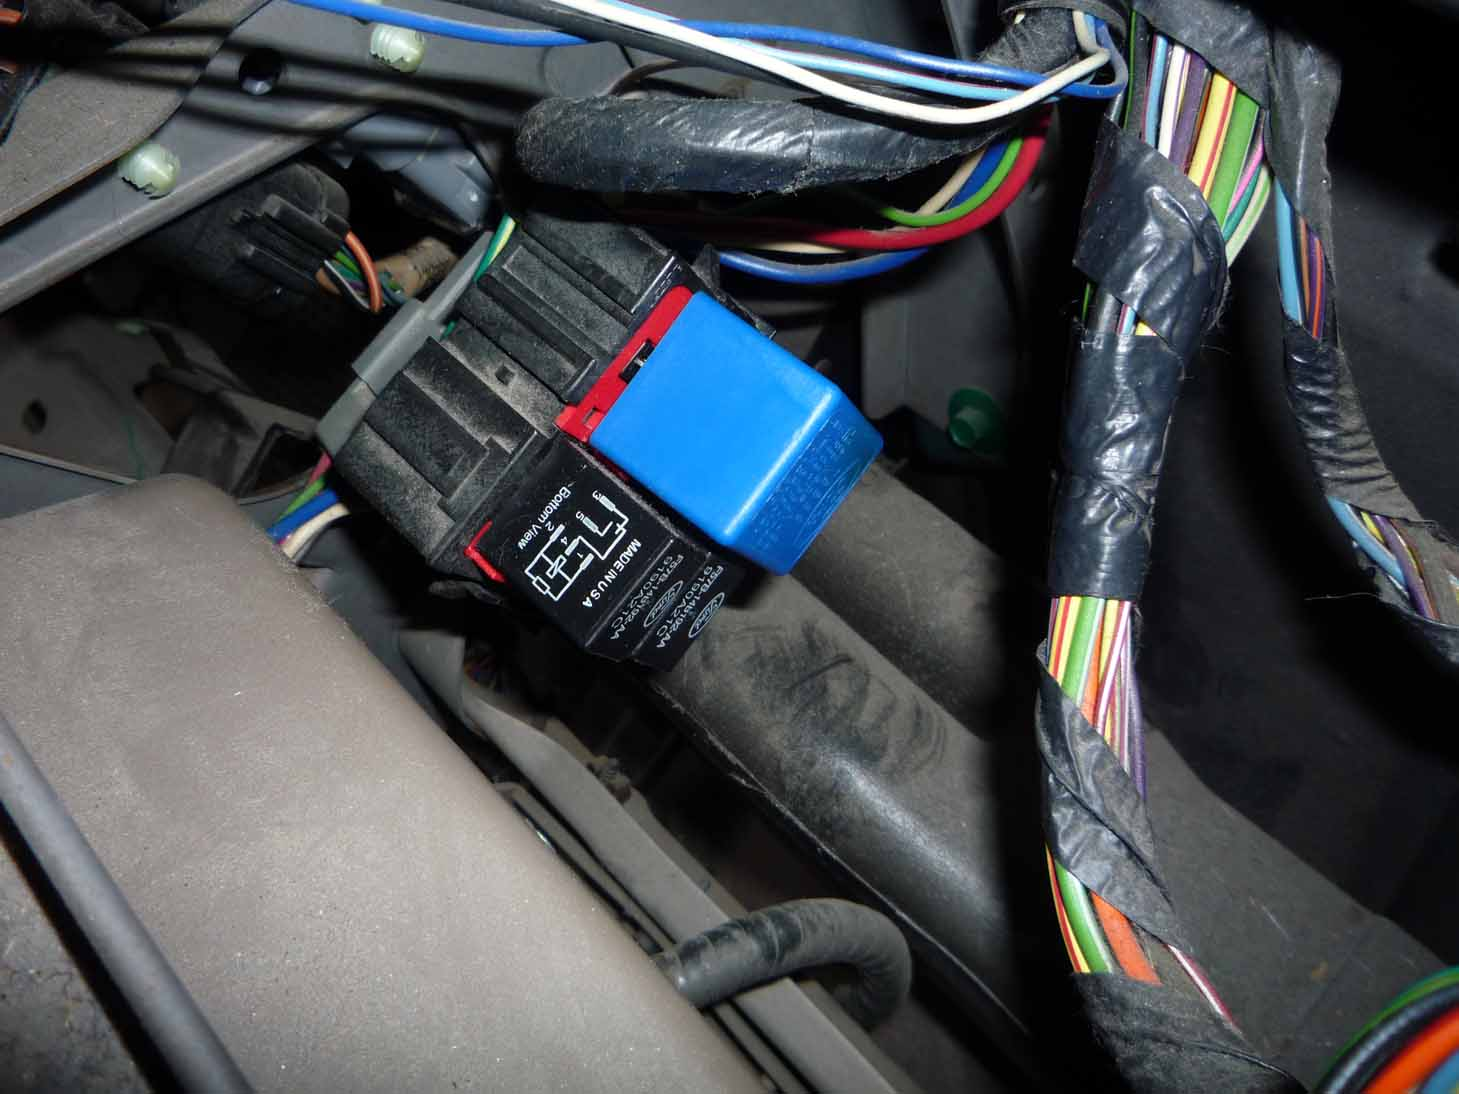 Gem Car Wiring Diagram furthermore 1997 Ford F 150 Xlt Dash Parts Diagram also F150 Voltage Regulator Diagram also 2004 Ford Expedition Exhaust Schematic additionally 2000 Ford F 150 Starter Relay Location. on 1997 ford expedition fuse box diagram